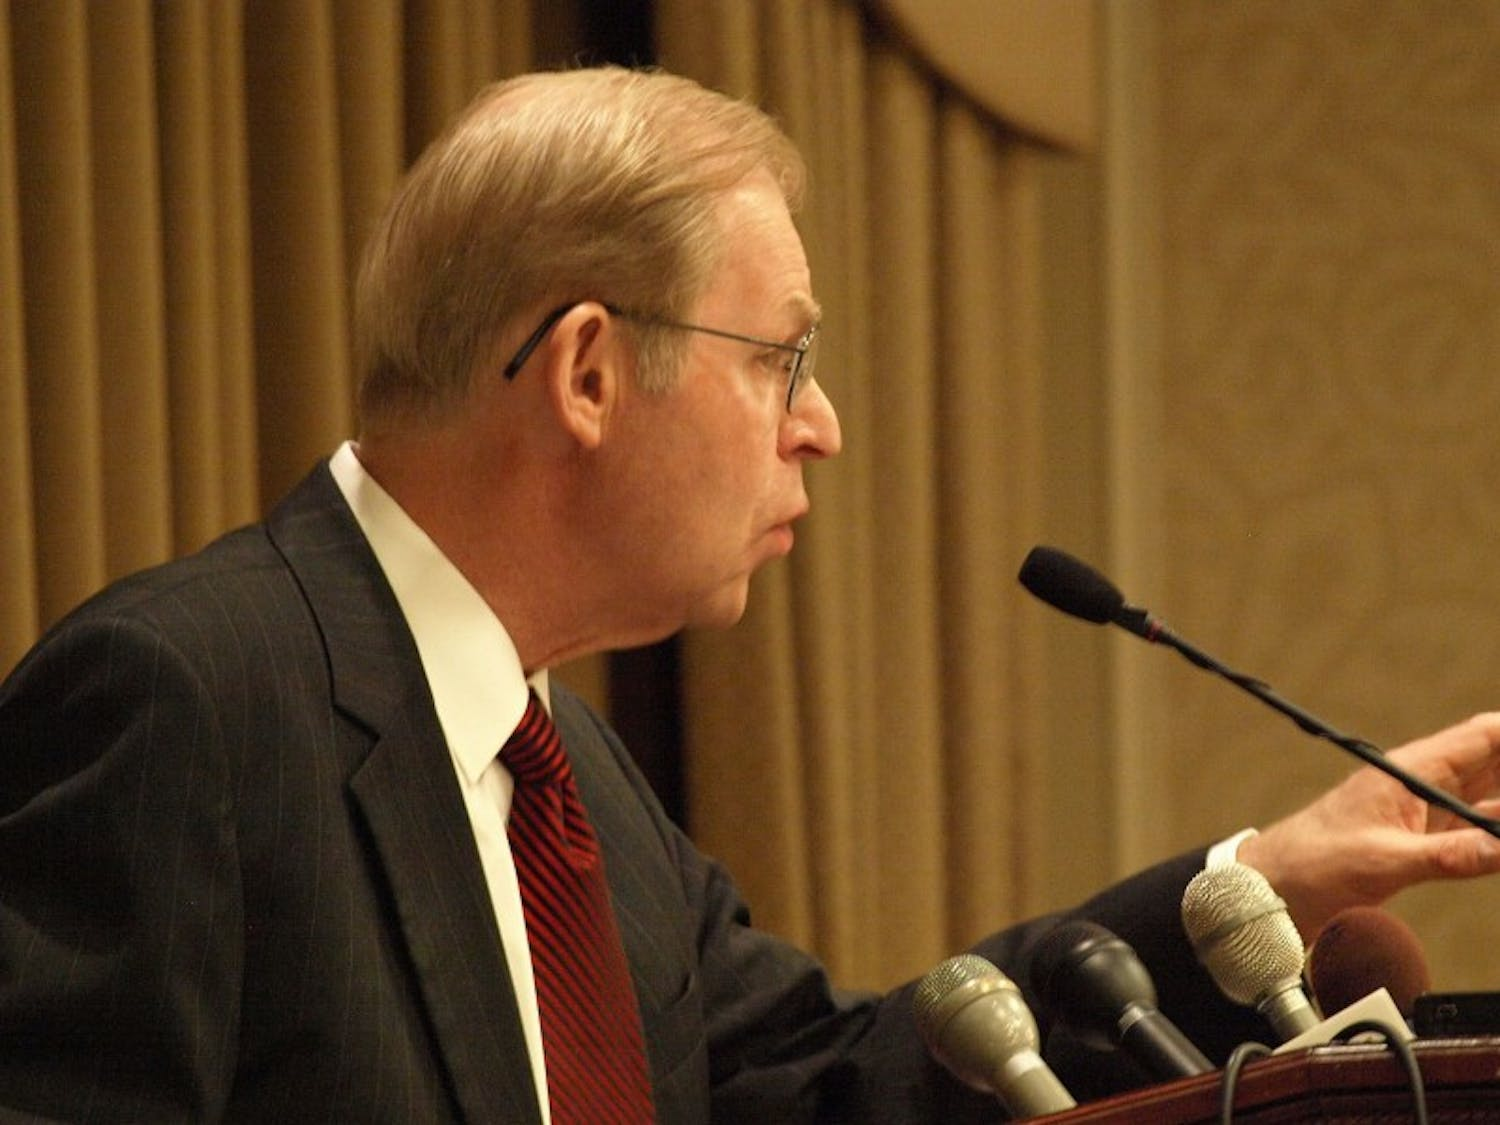 State Supreme Court judge David Prosser announced Wednesday he would retire in July after 18 years of service on the state's highest court.